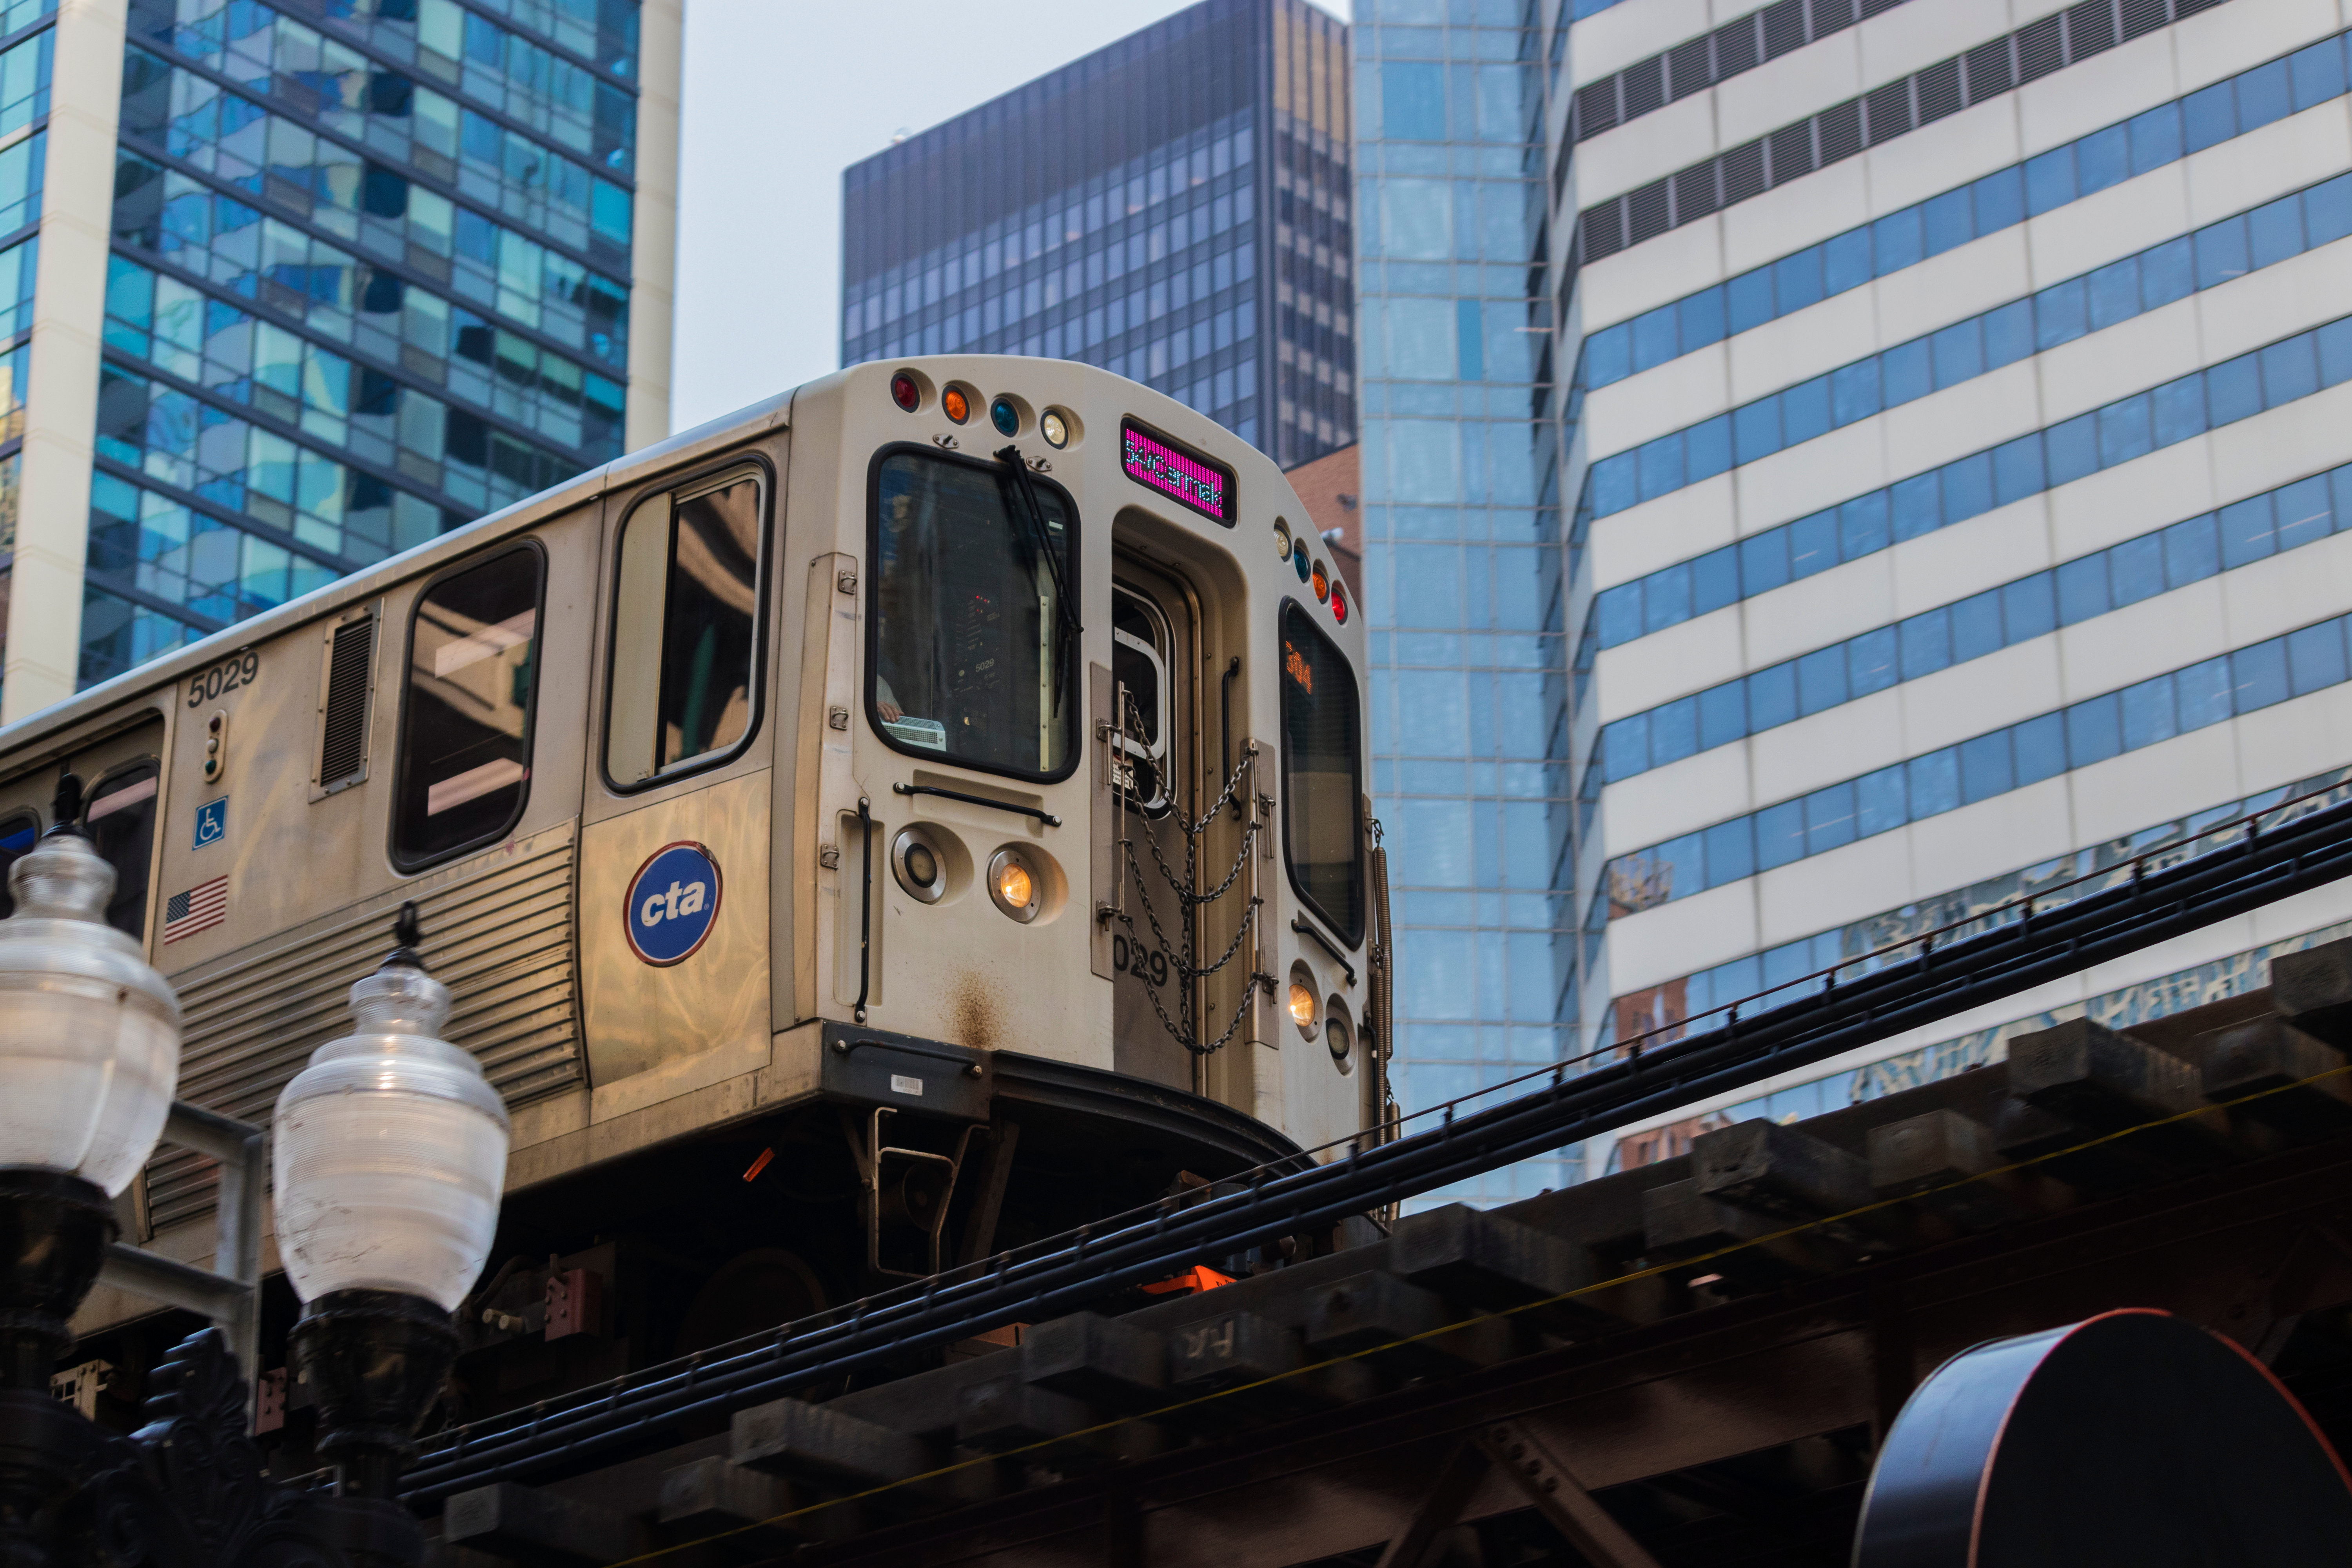 A Chicago CTA train runs through elevated lines in the downtown business district.